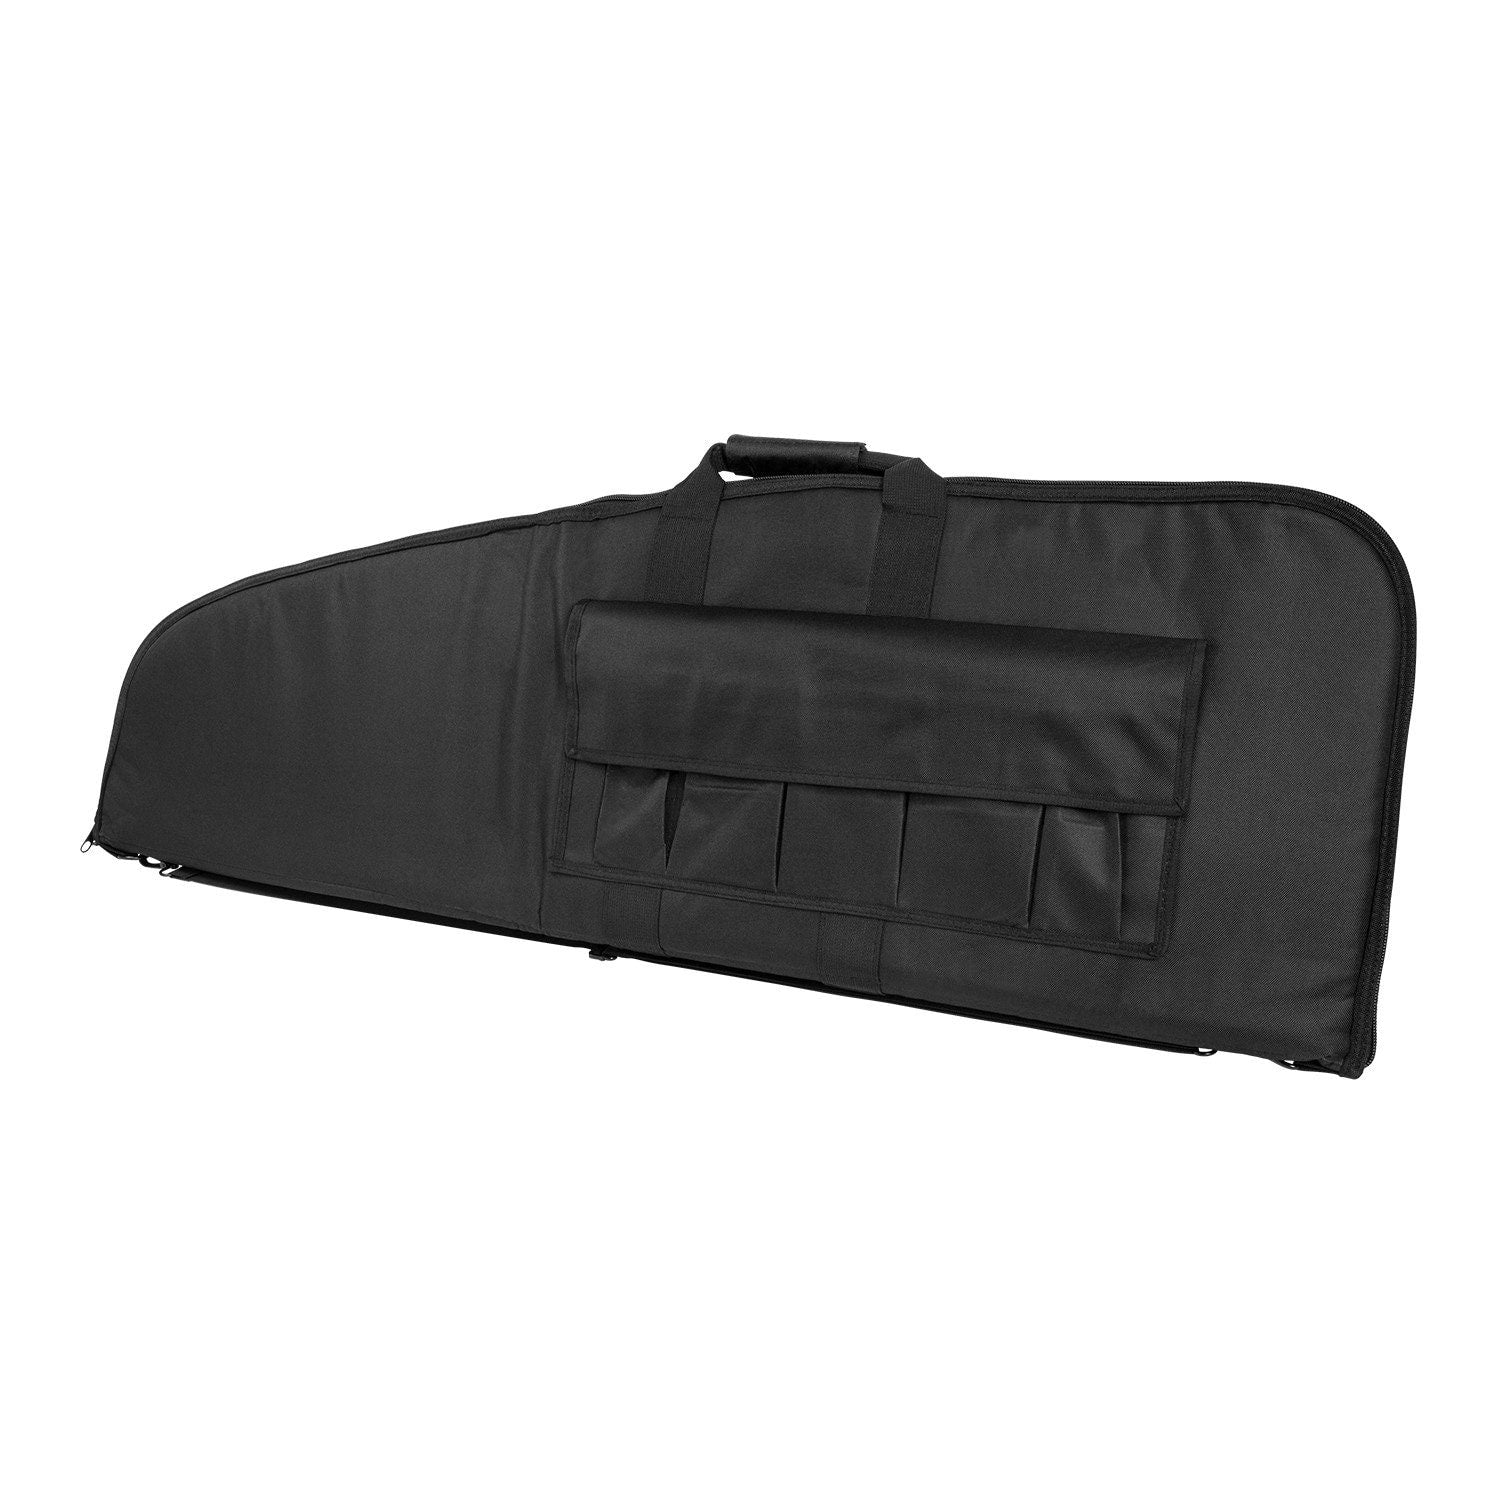 Scope-Ready Rifle Case (48 Inch X 16 Inch) - Black - Rifle/carbine Cases - Vism - Colonel Mustard